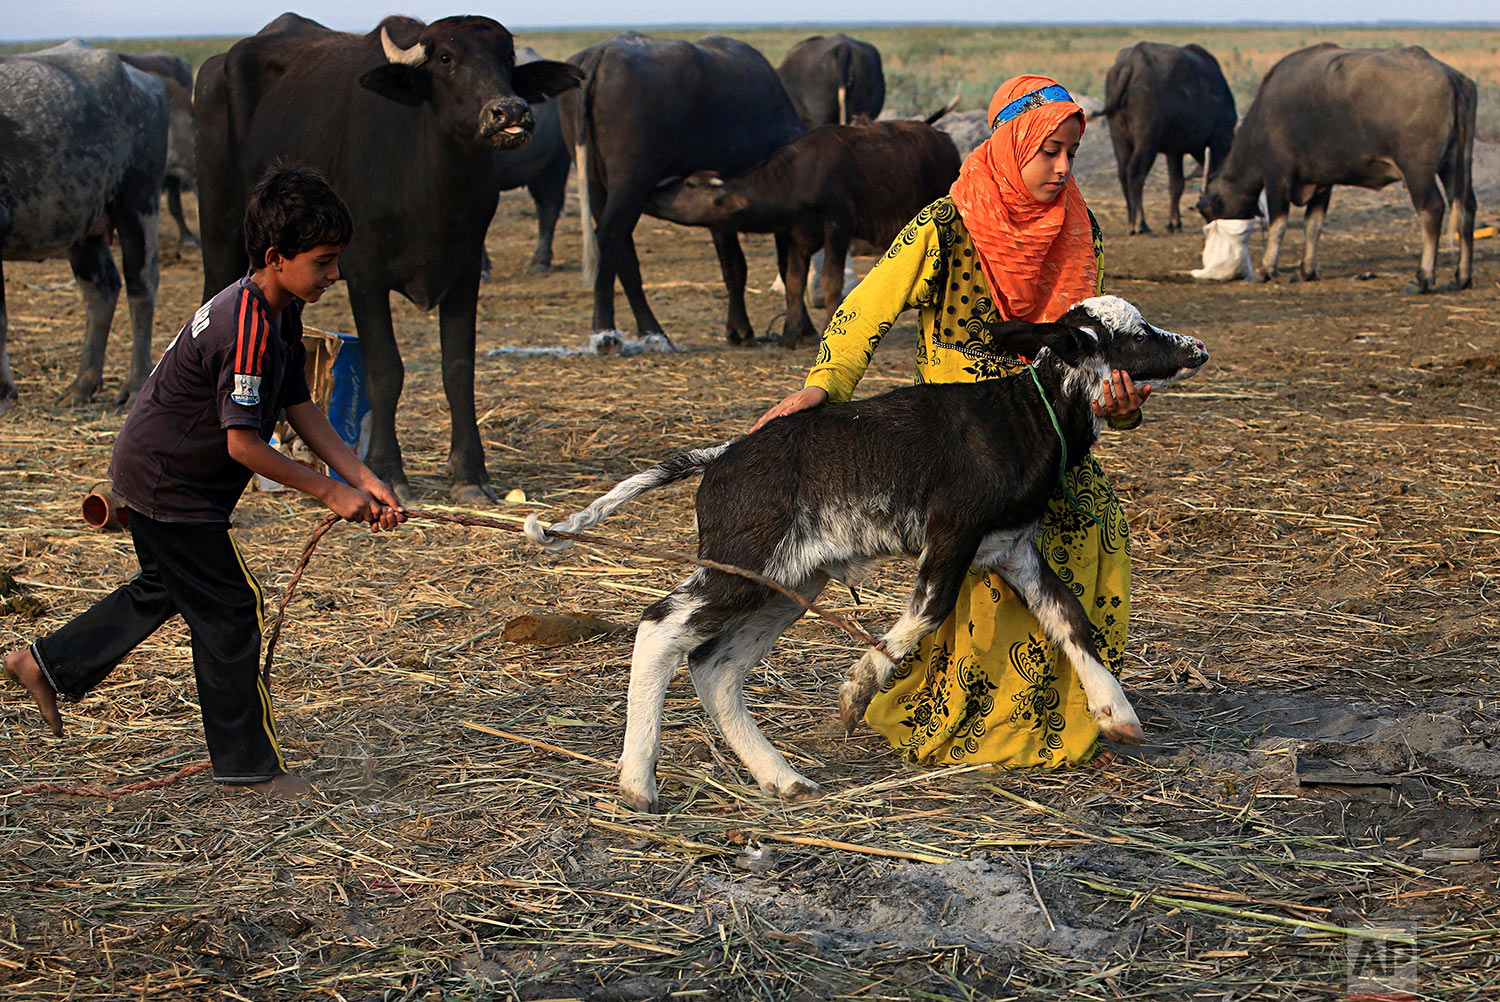 In this Monday, Sept. 11, 2017 photo, a water buffalo is taken to an island paddock in the Chabaish marsh in Nasiriyah, about 200 miles (320 kilometers) southeast of Baghdad, Iraq. Iraq's southern marshes, a lush remnant of the cradle of civilization, were reborn after the 2003 fall of Saddam Hussein when residents dismantled dams he had built a decade earlier to drain the area in order to root out Shiite rebels. But now the largest wetlands in the Middle East are imperiled again, by government mismanagement and new upstream projects.(AP Photo/Nabil al-Jurani)